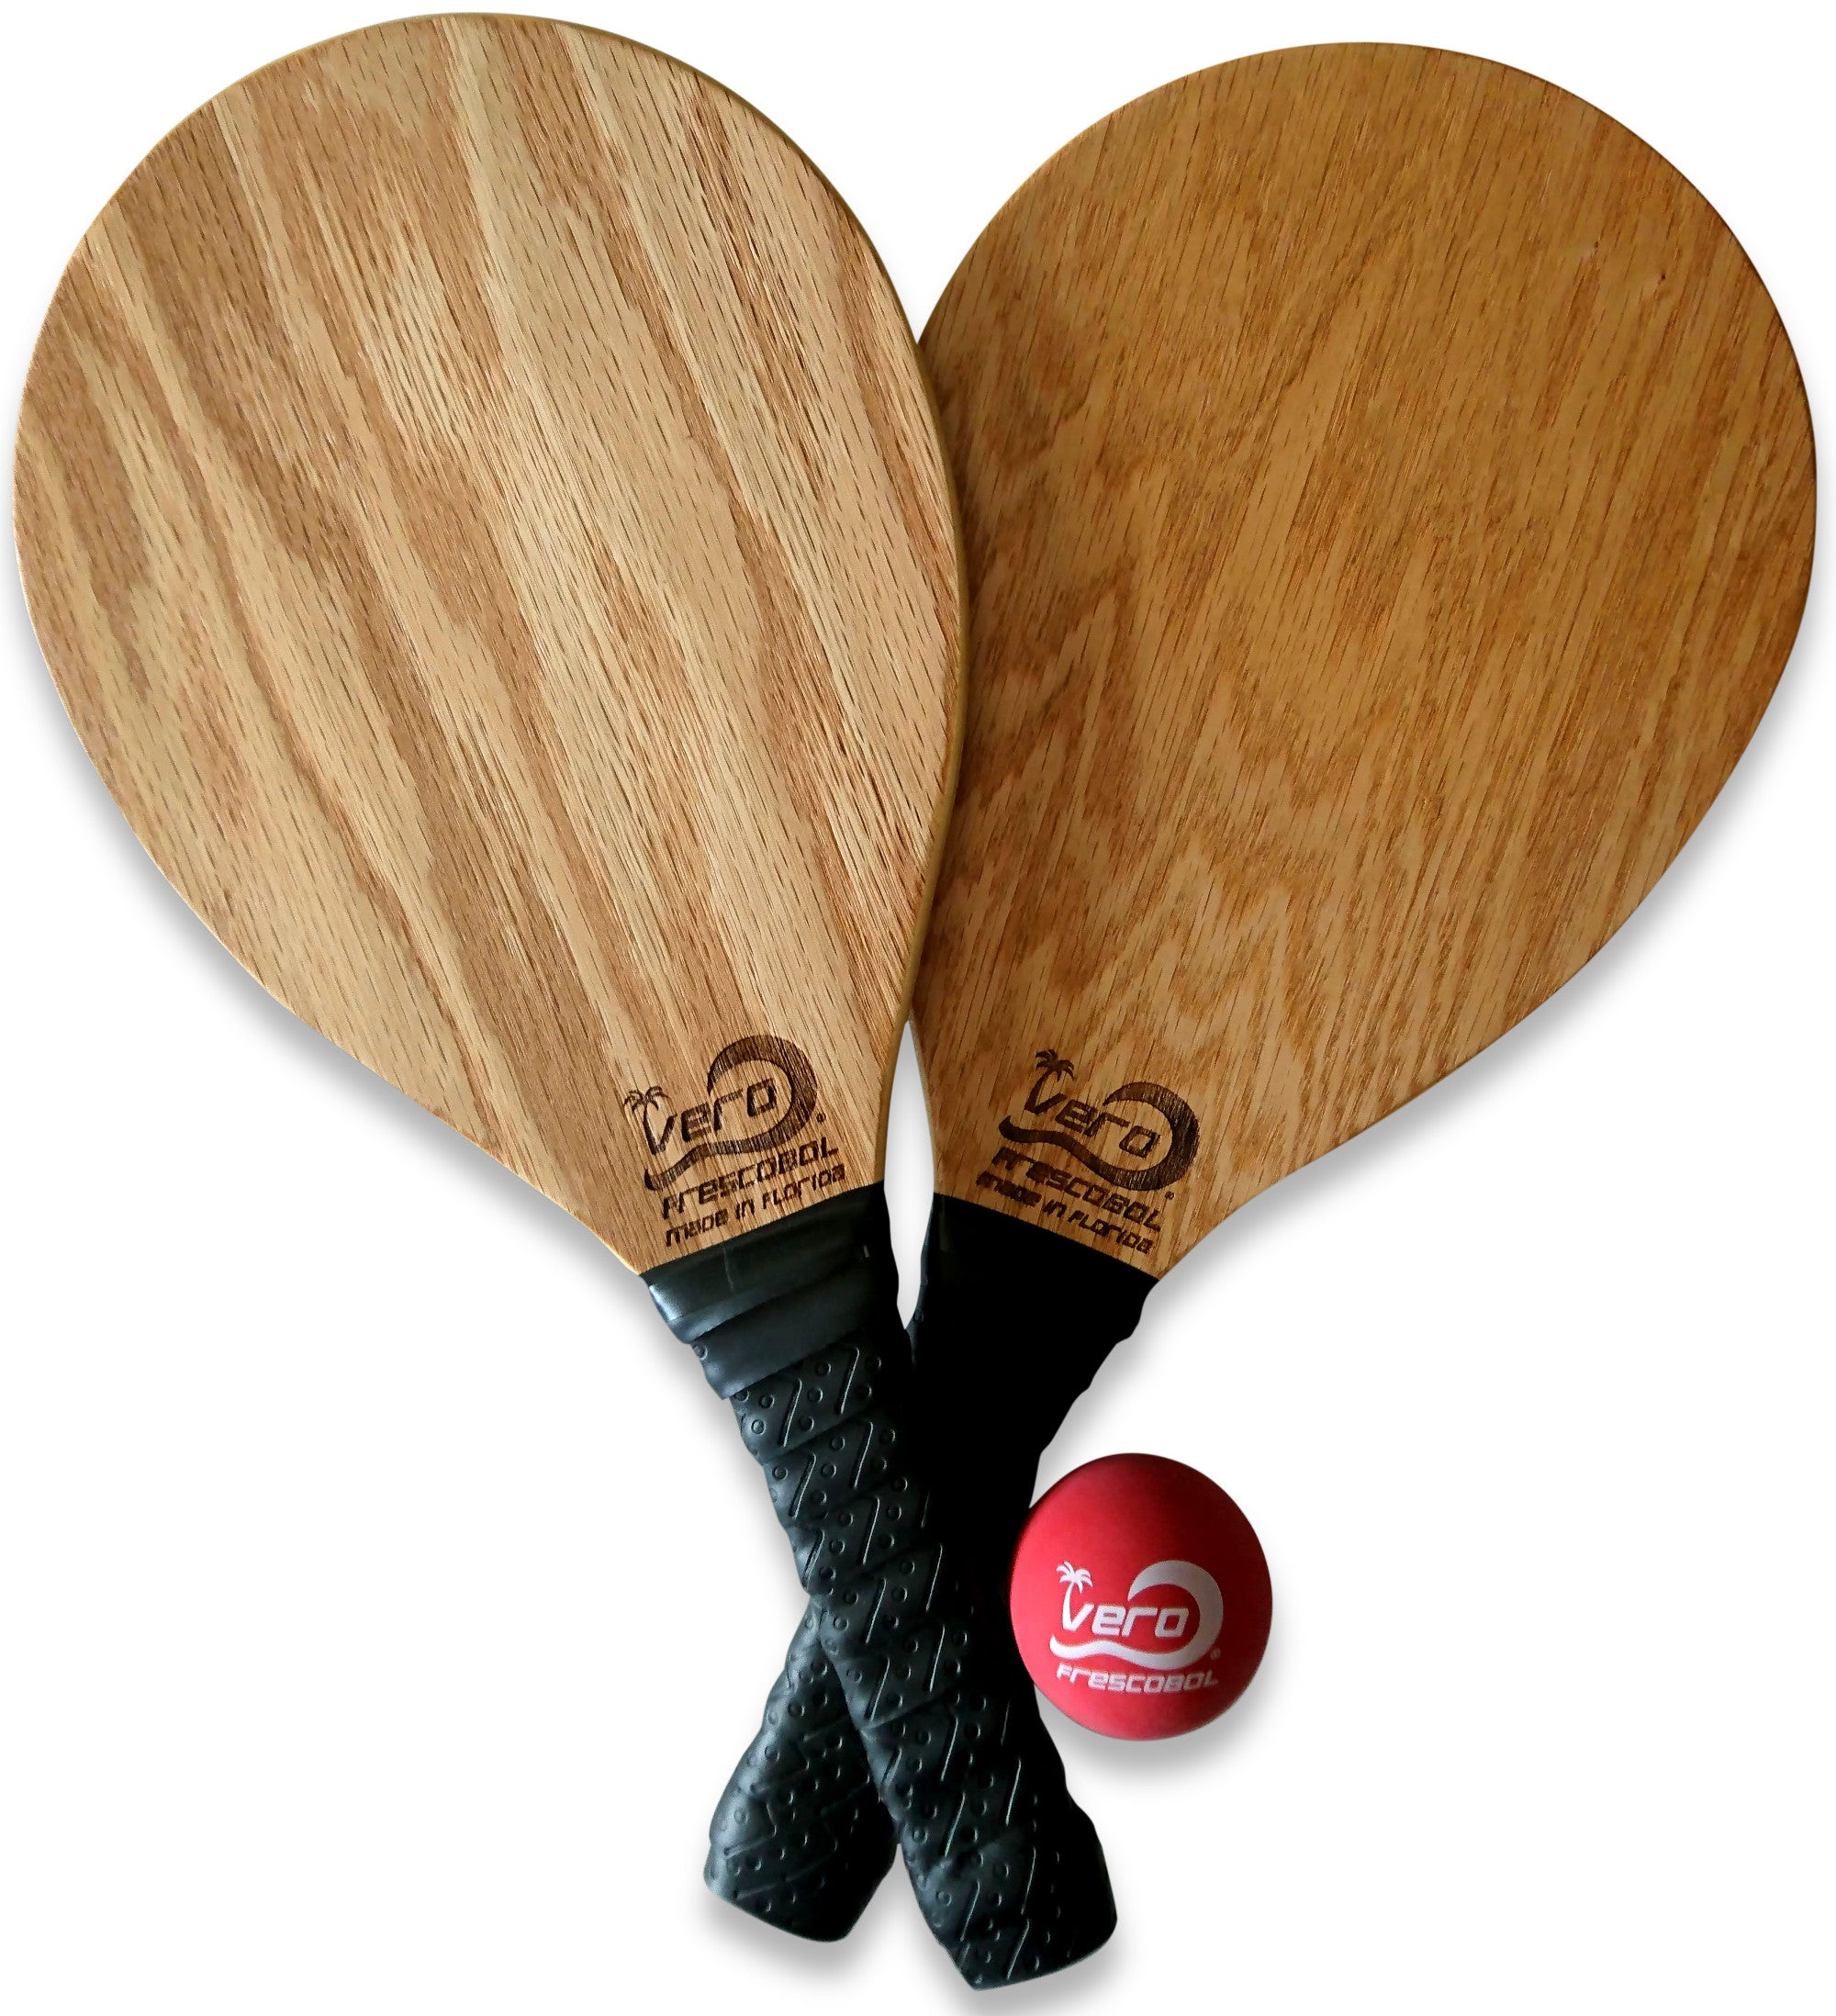 Oak Wood Frescobol Beach Paddle Kit